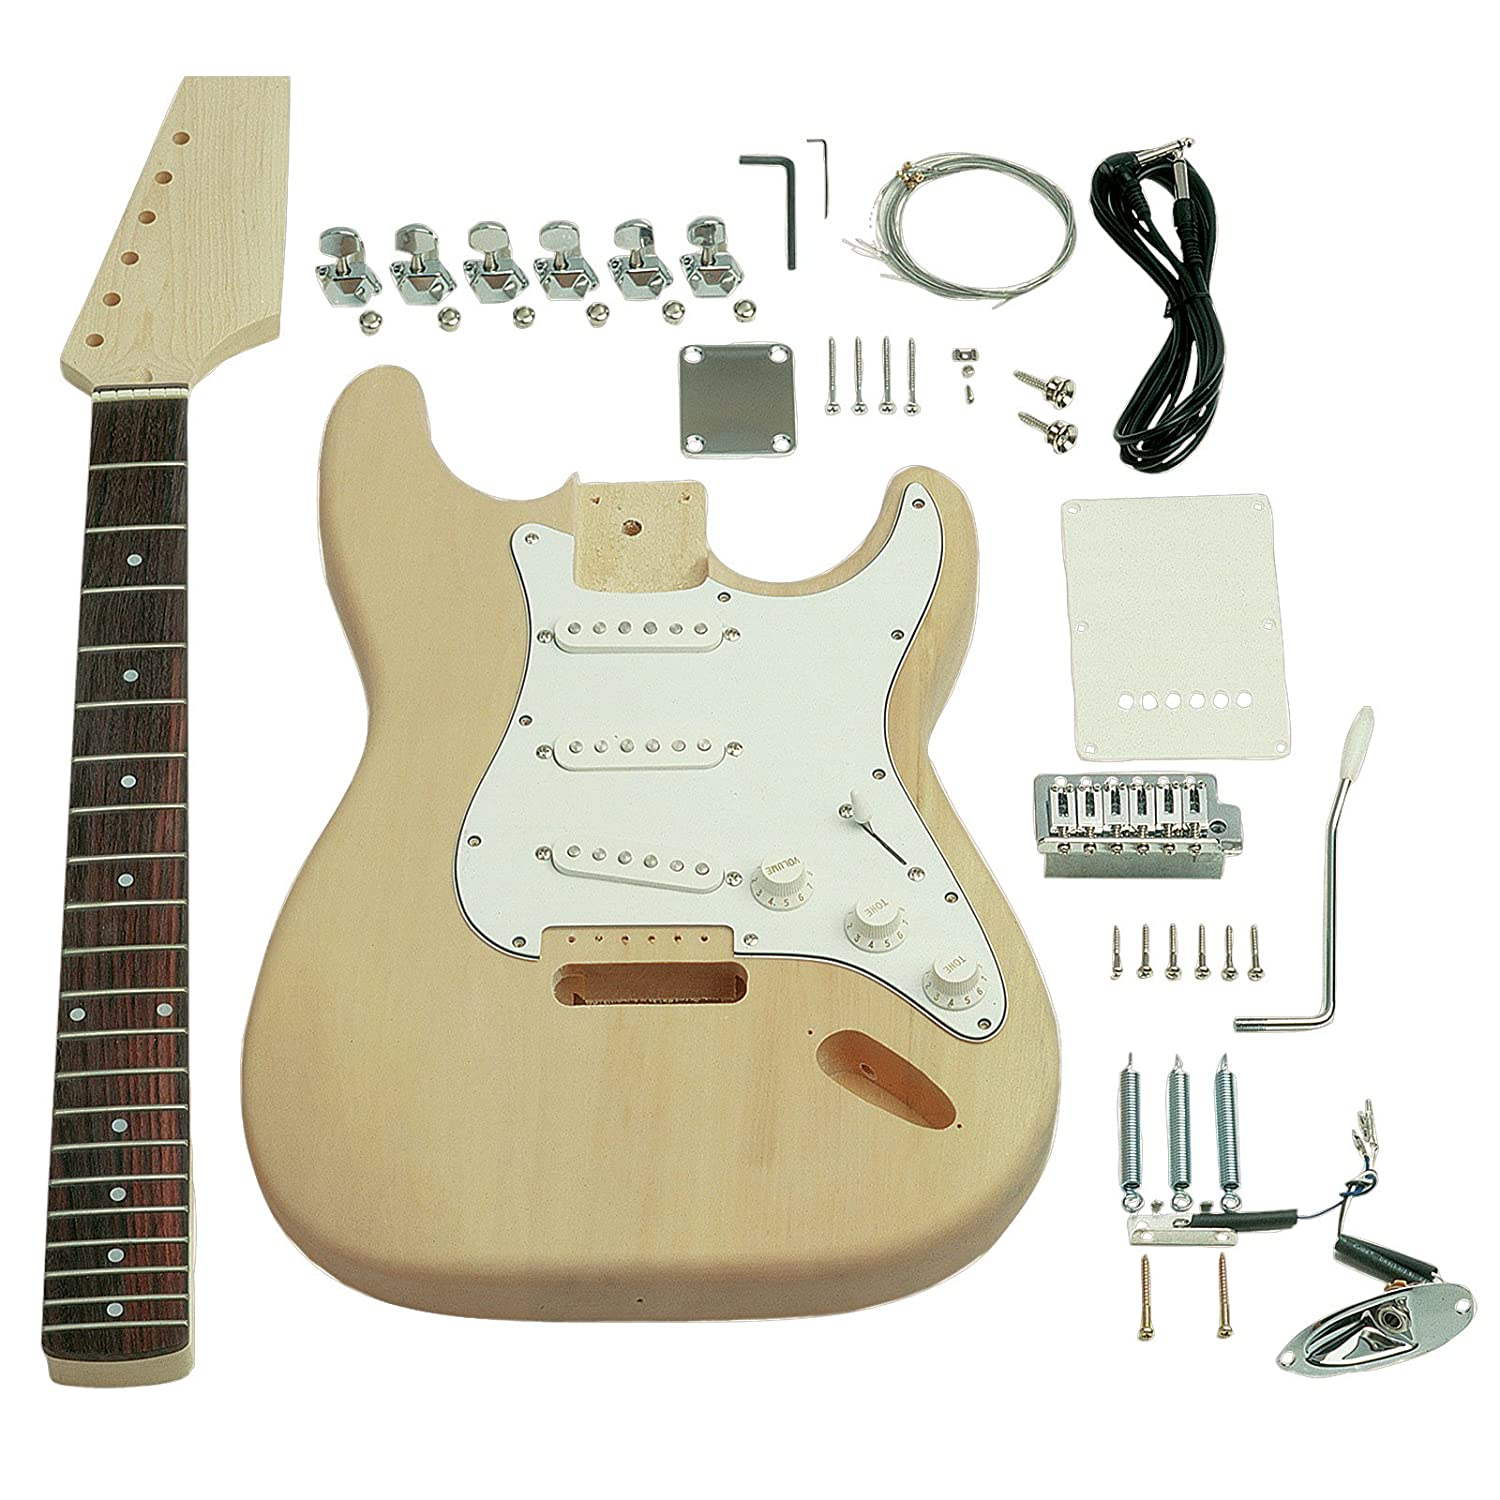 amazon com saga st 10 electric guitar kit s style musical rh amazon com